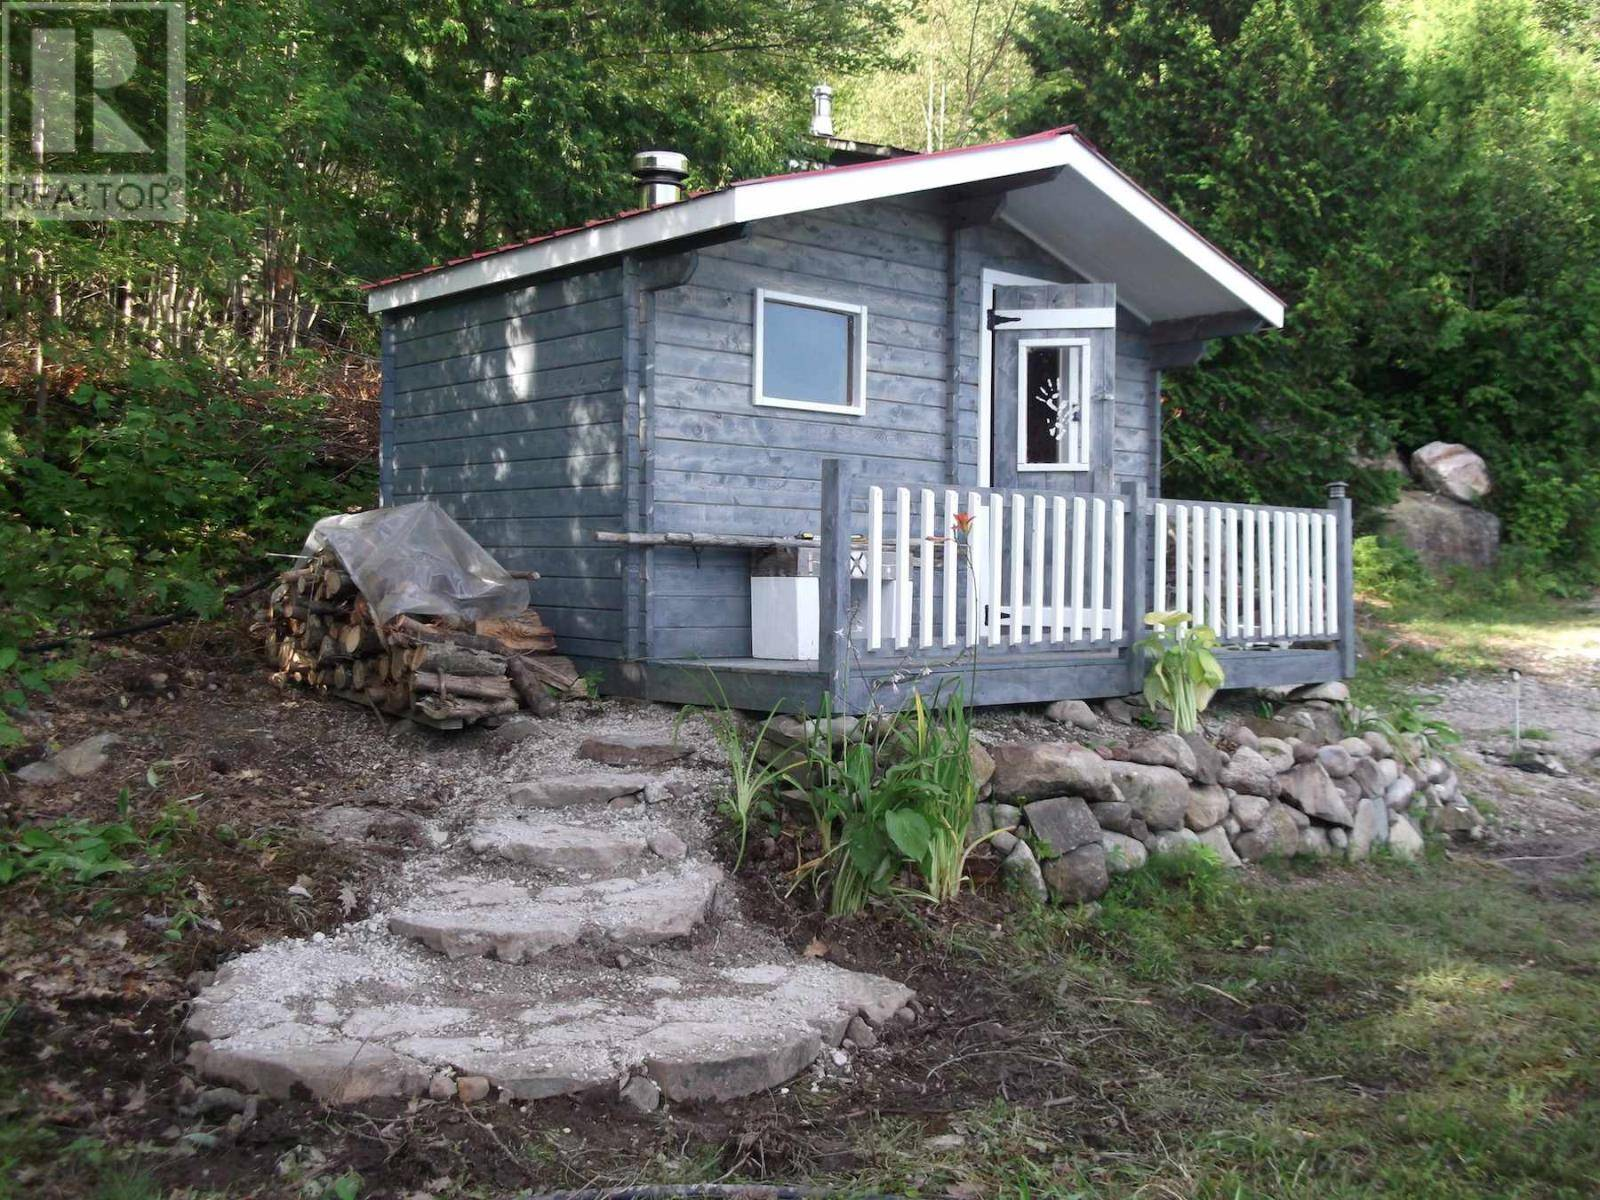 Home for sale at 1308 High Rd Blind River Ontario - MLS: SM127928